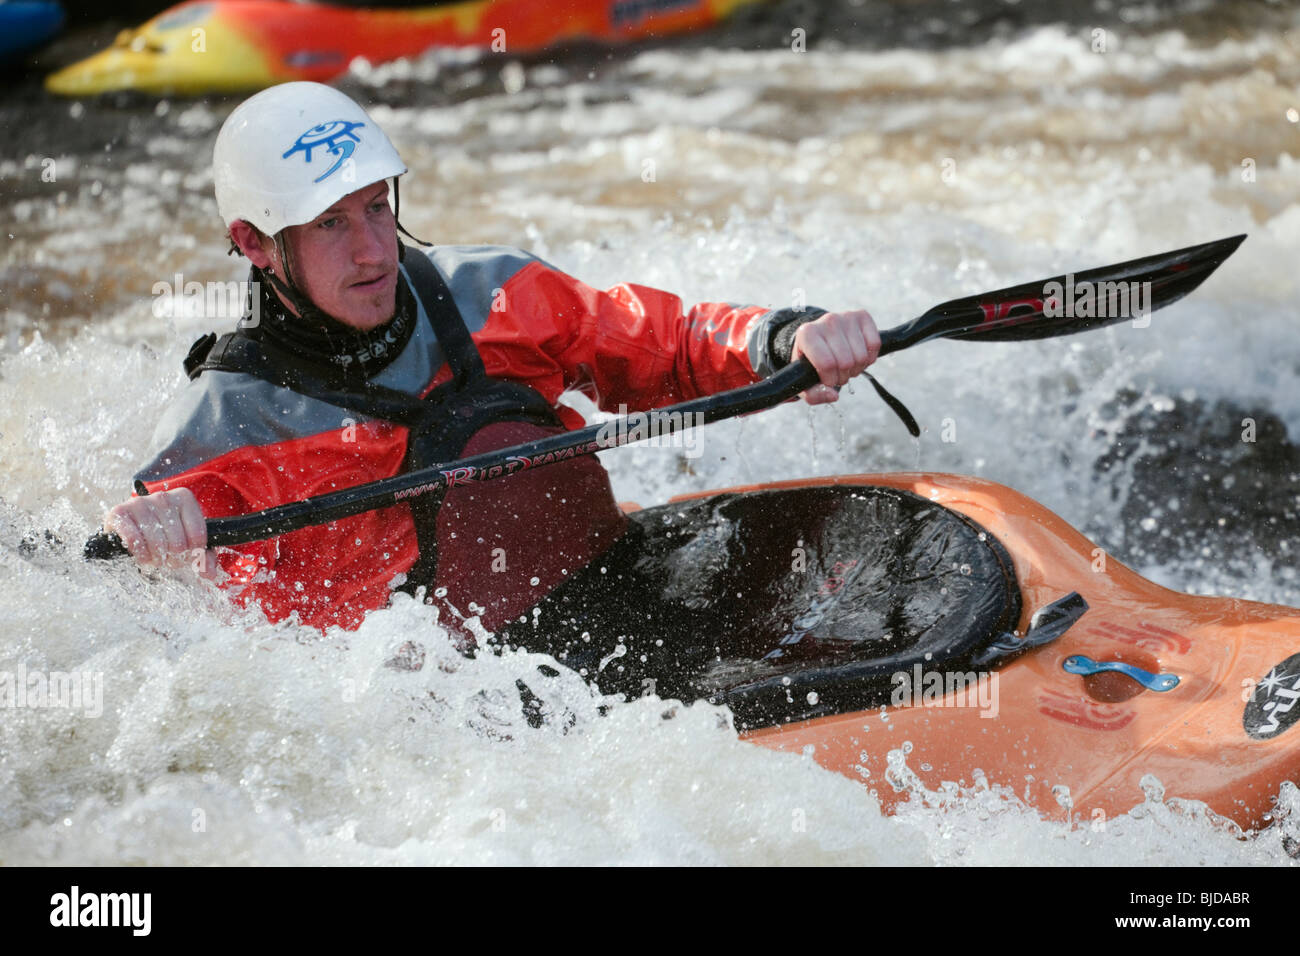 National Whitewater Centre, Frongoch, Gwynedd, North Wales, UK. Kayaker kayaking in white water on Tryweryn River. - Stock Image